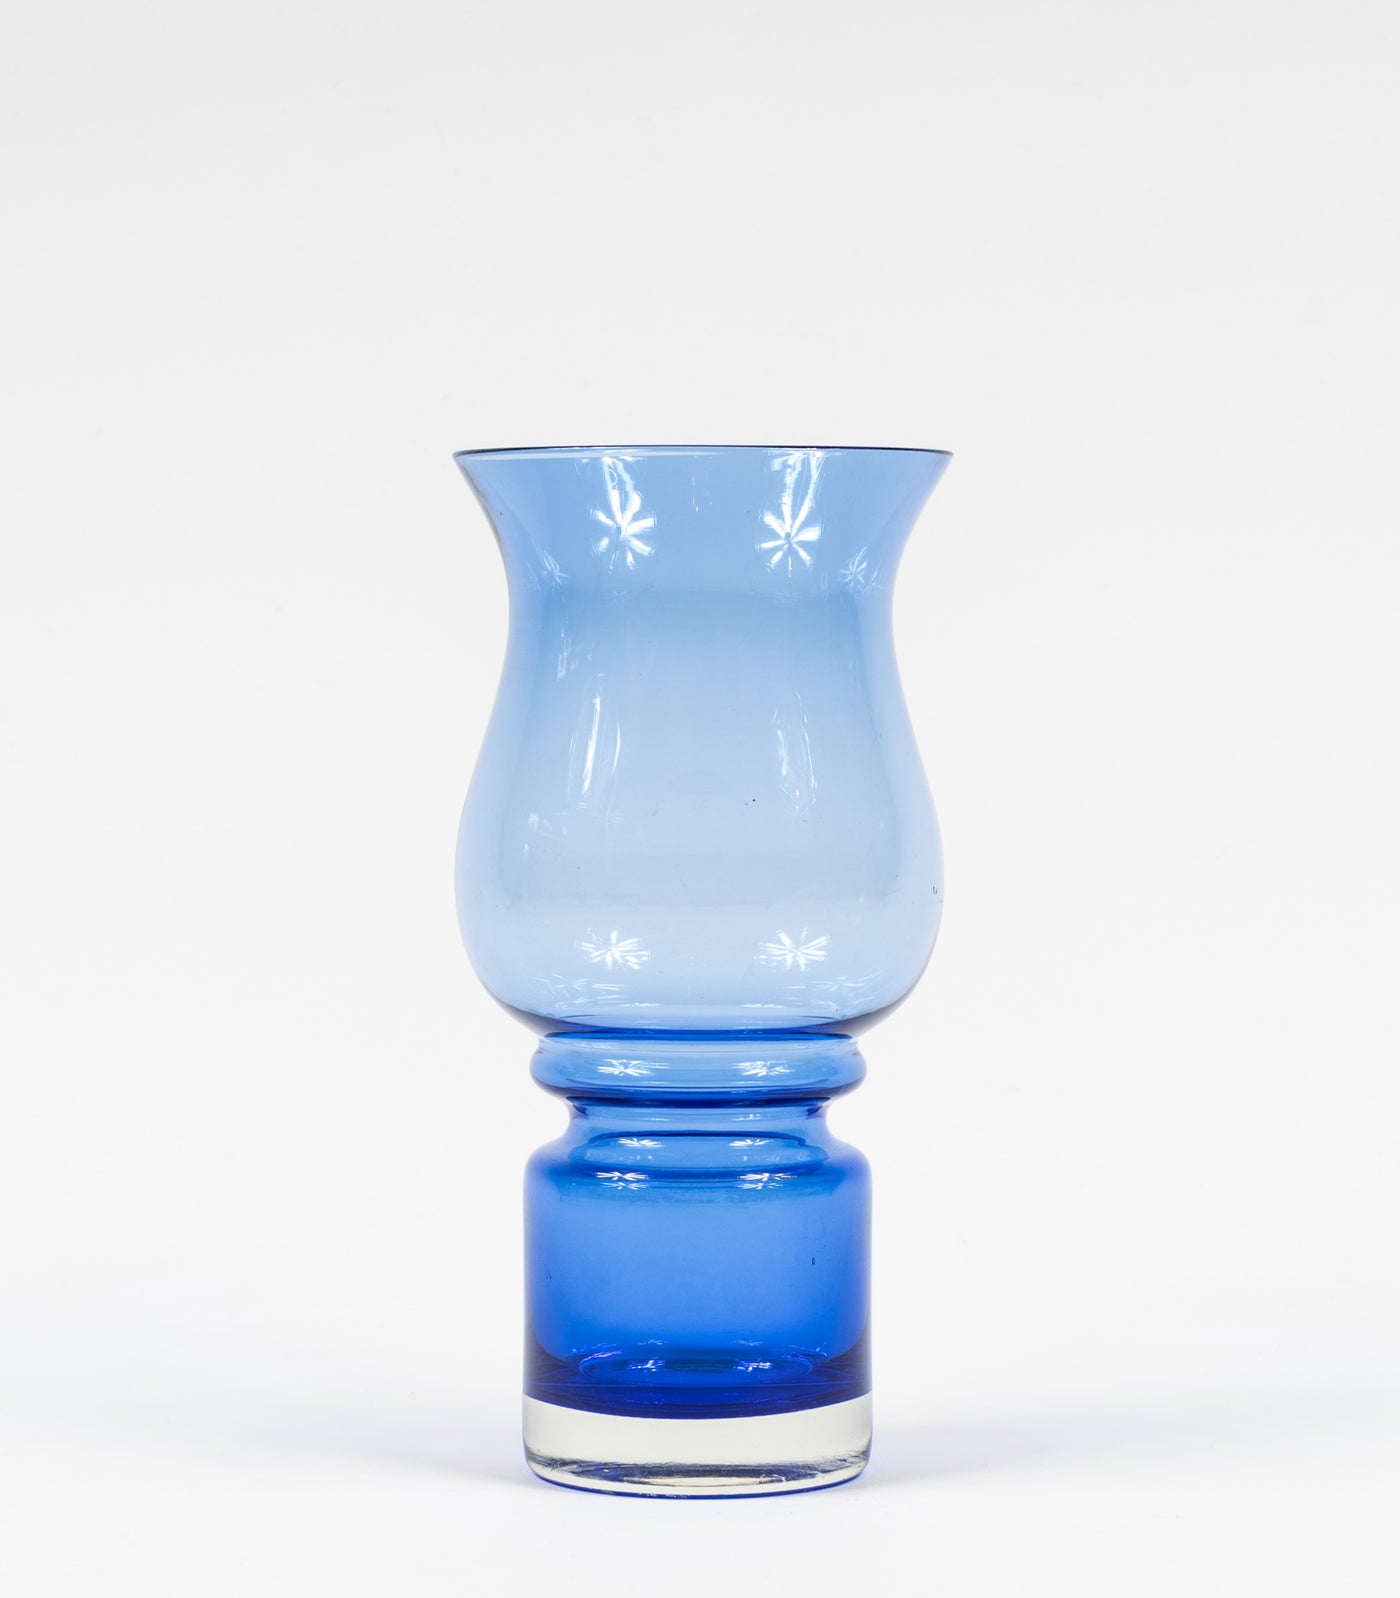 Riihimaen Lasi Oy Riihimaki Blue Glass Vase Designed By Tamara Aladin Glass Pottery, Porcelain & Glass